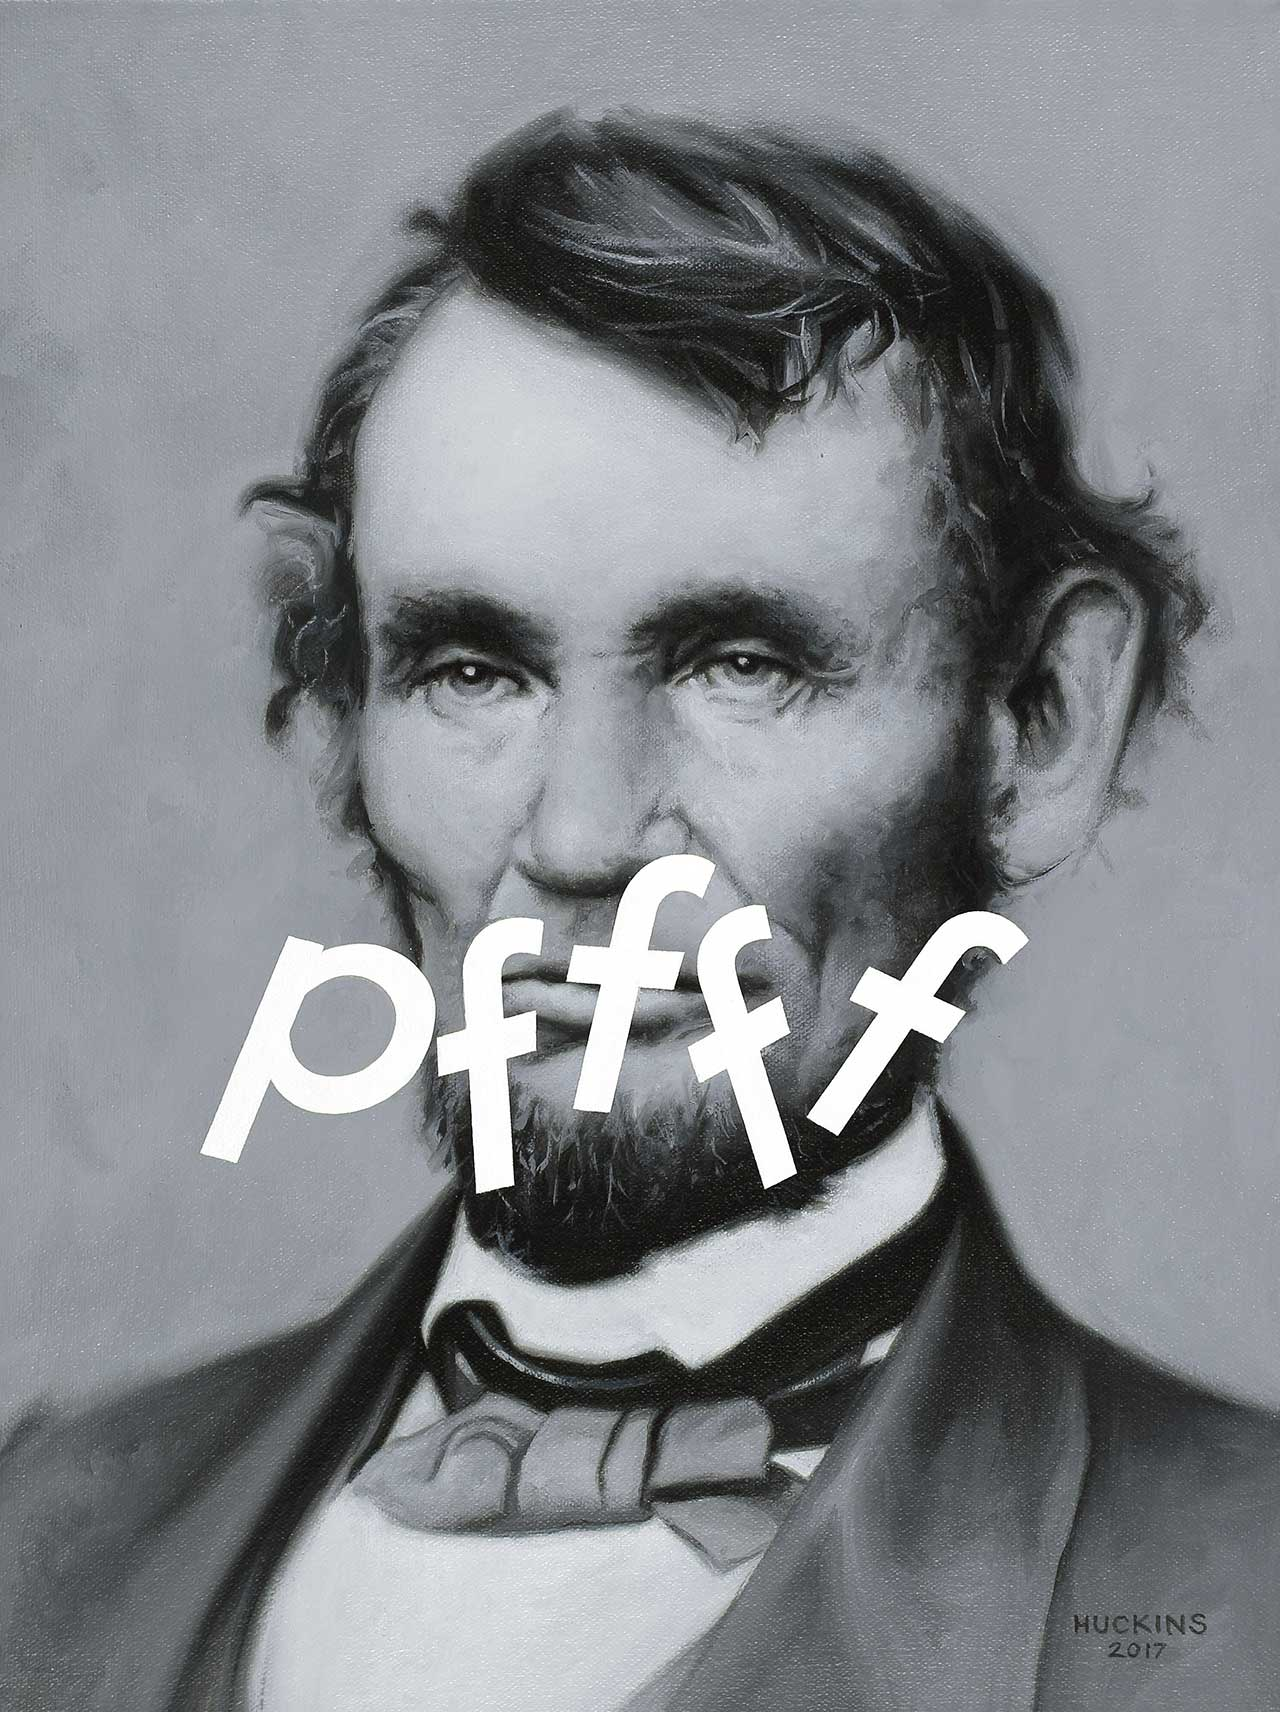 Shawn Huckins, Abraham Lincoln: Pffff, 2017. Acrylic on canvas. 16 x 12 in (41 x 30 cm).